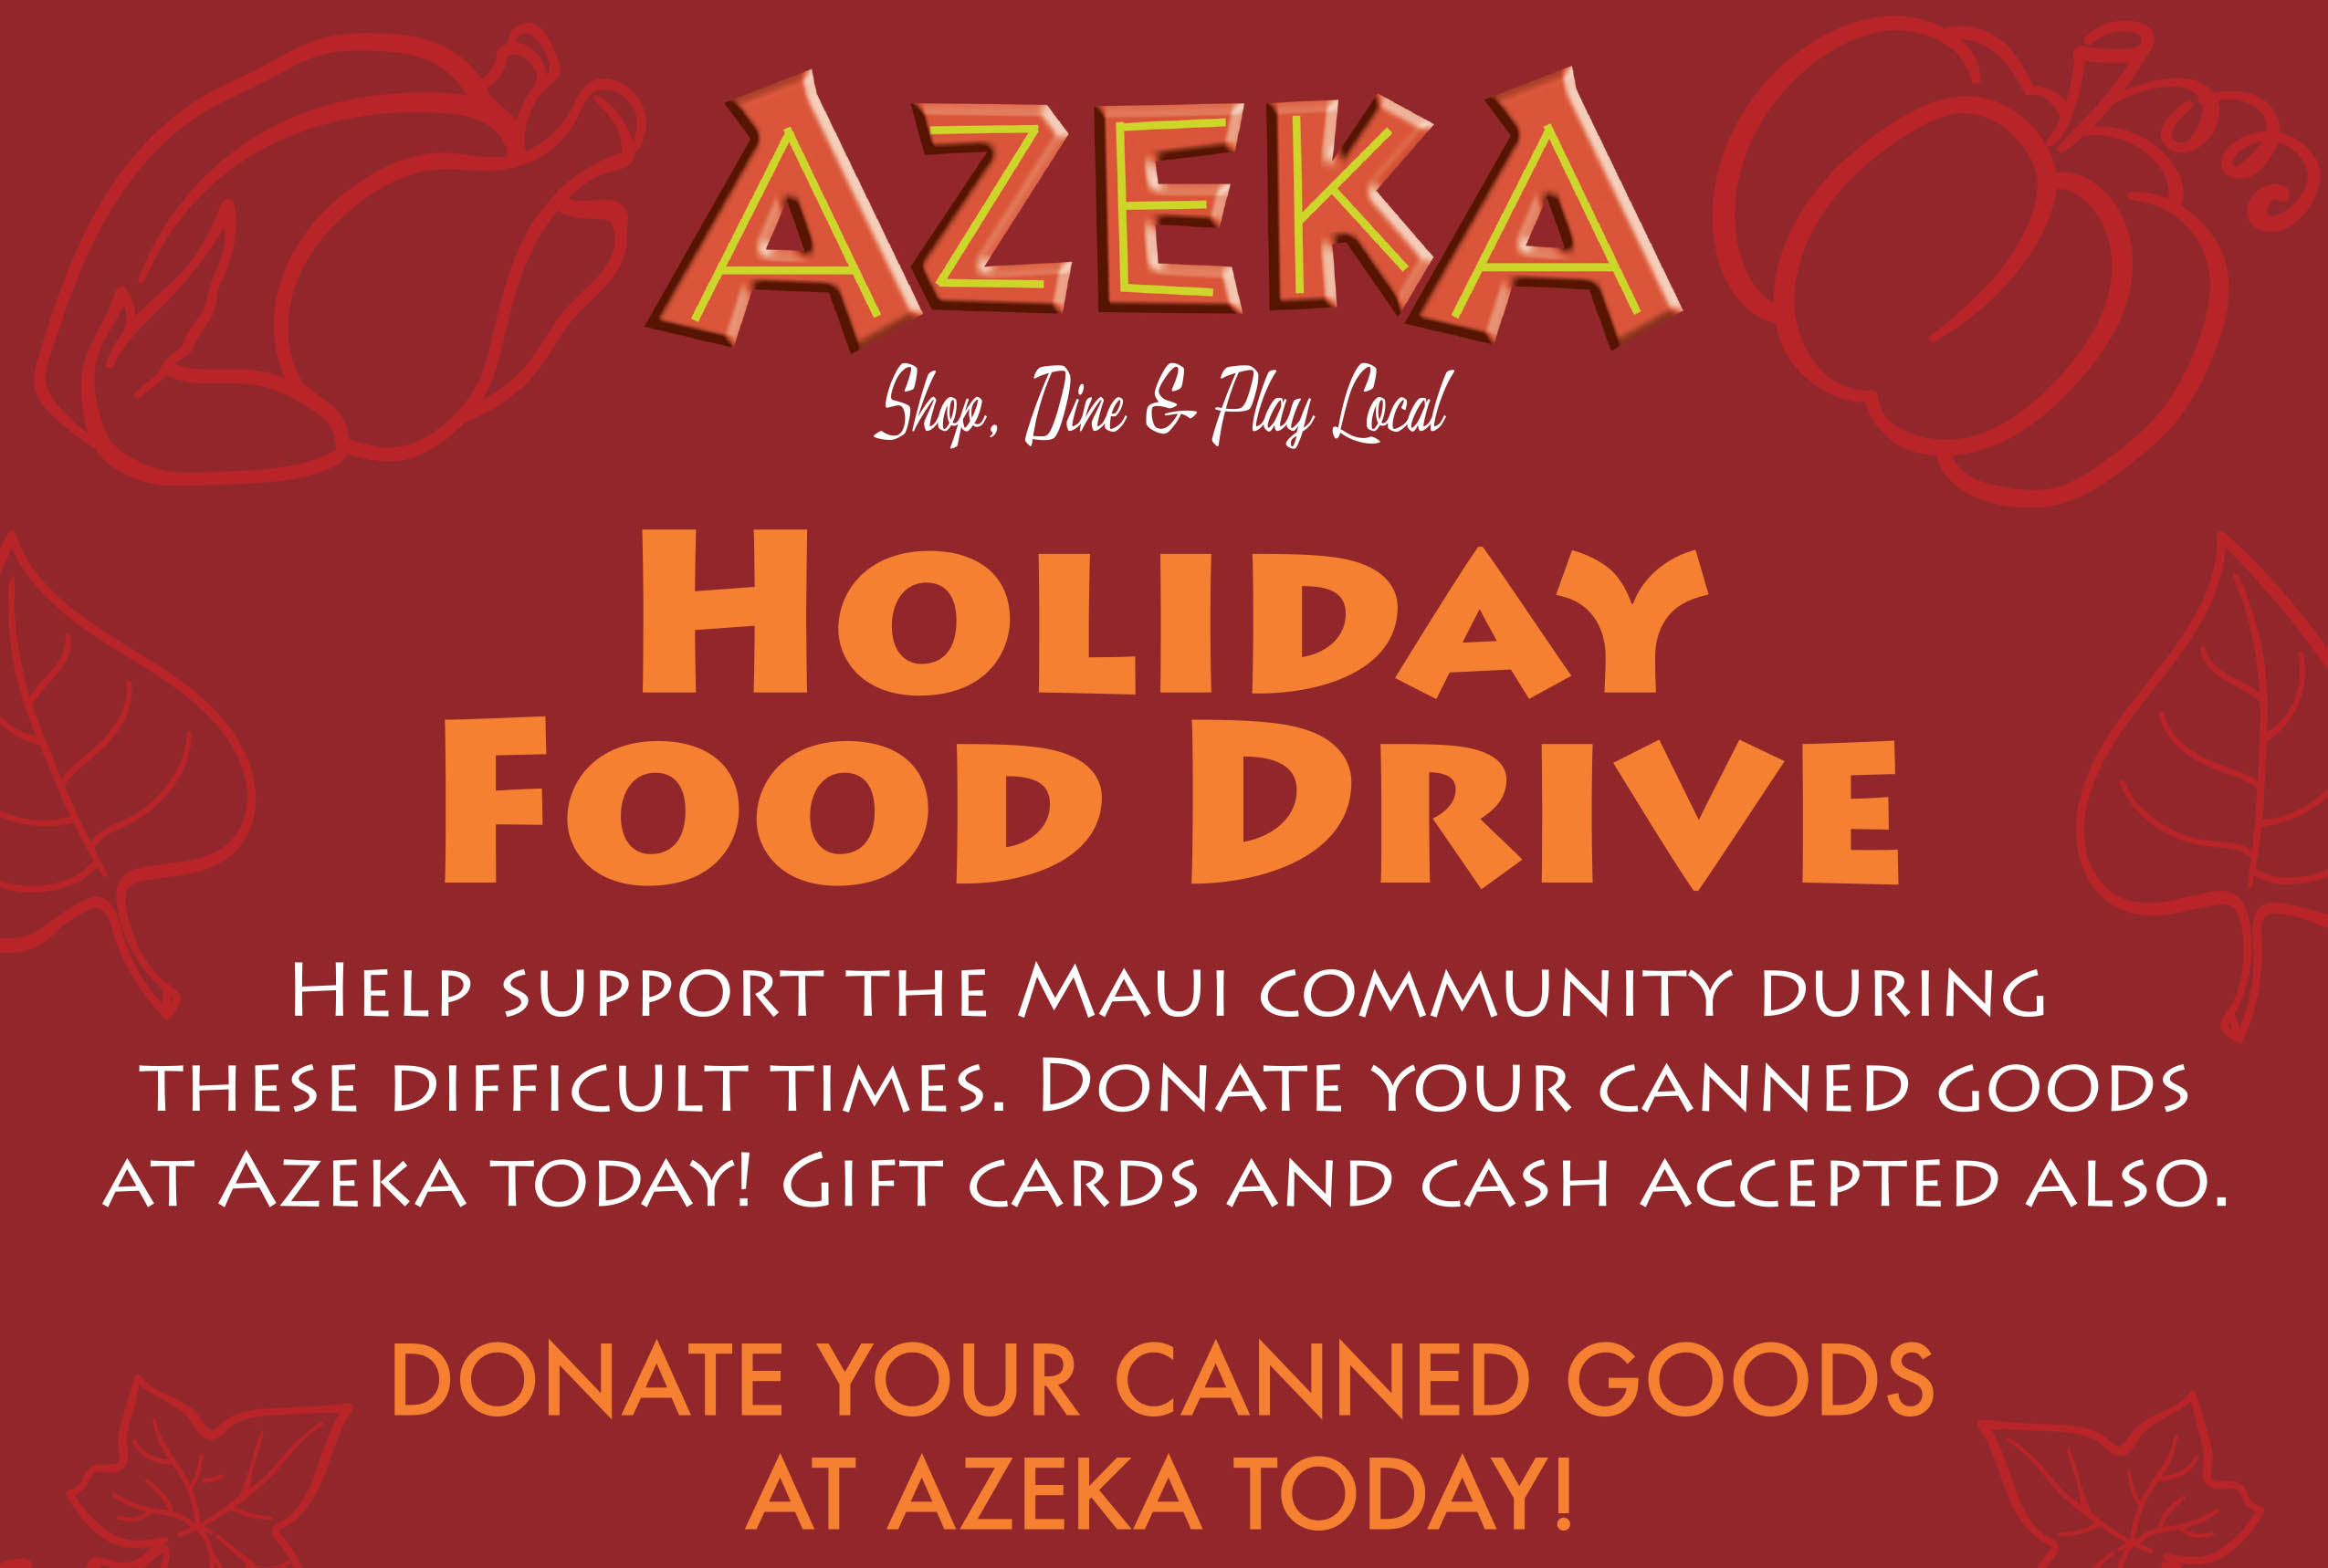 Holiday Food Drive Begins this Week at Azeka Shopping Center in Kihei